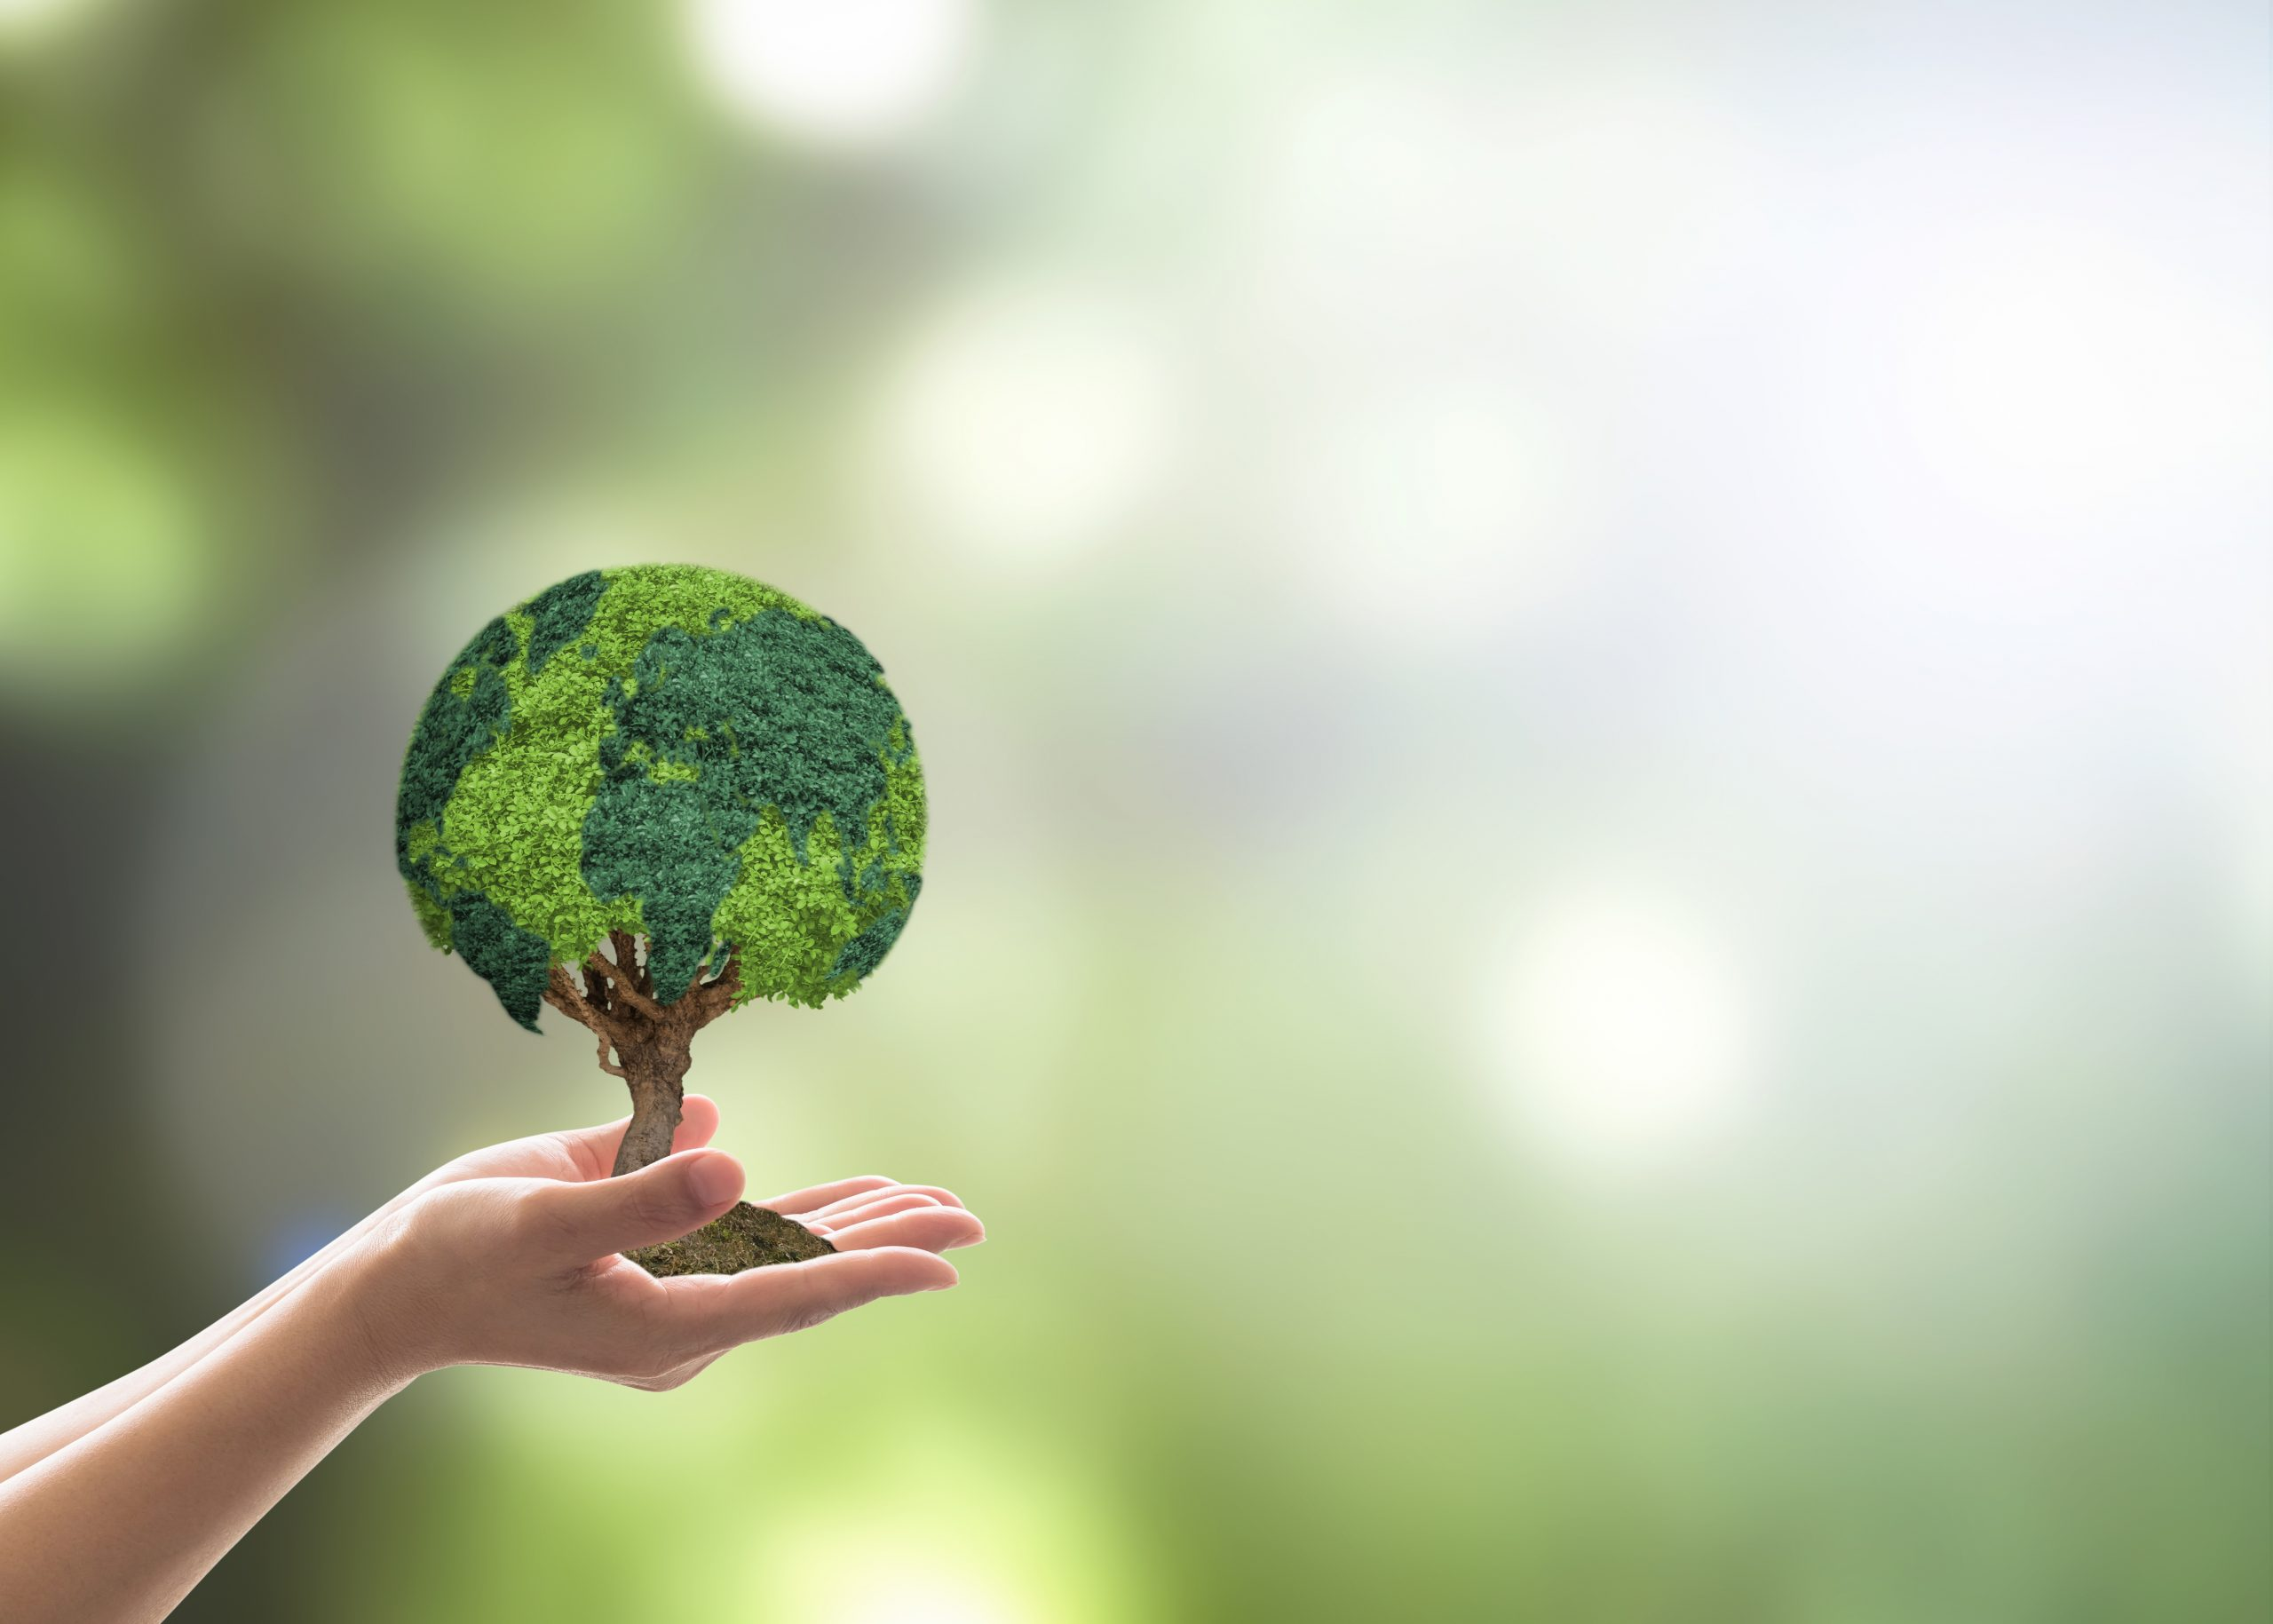 Tree globe growing on volunteer's hand for earth day, sustainable environment protection campaign and natural conservation concept